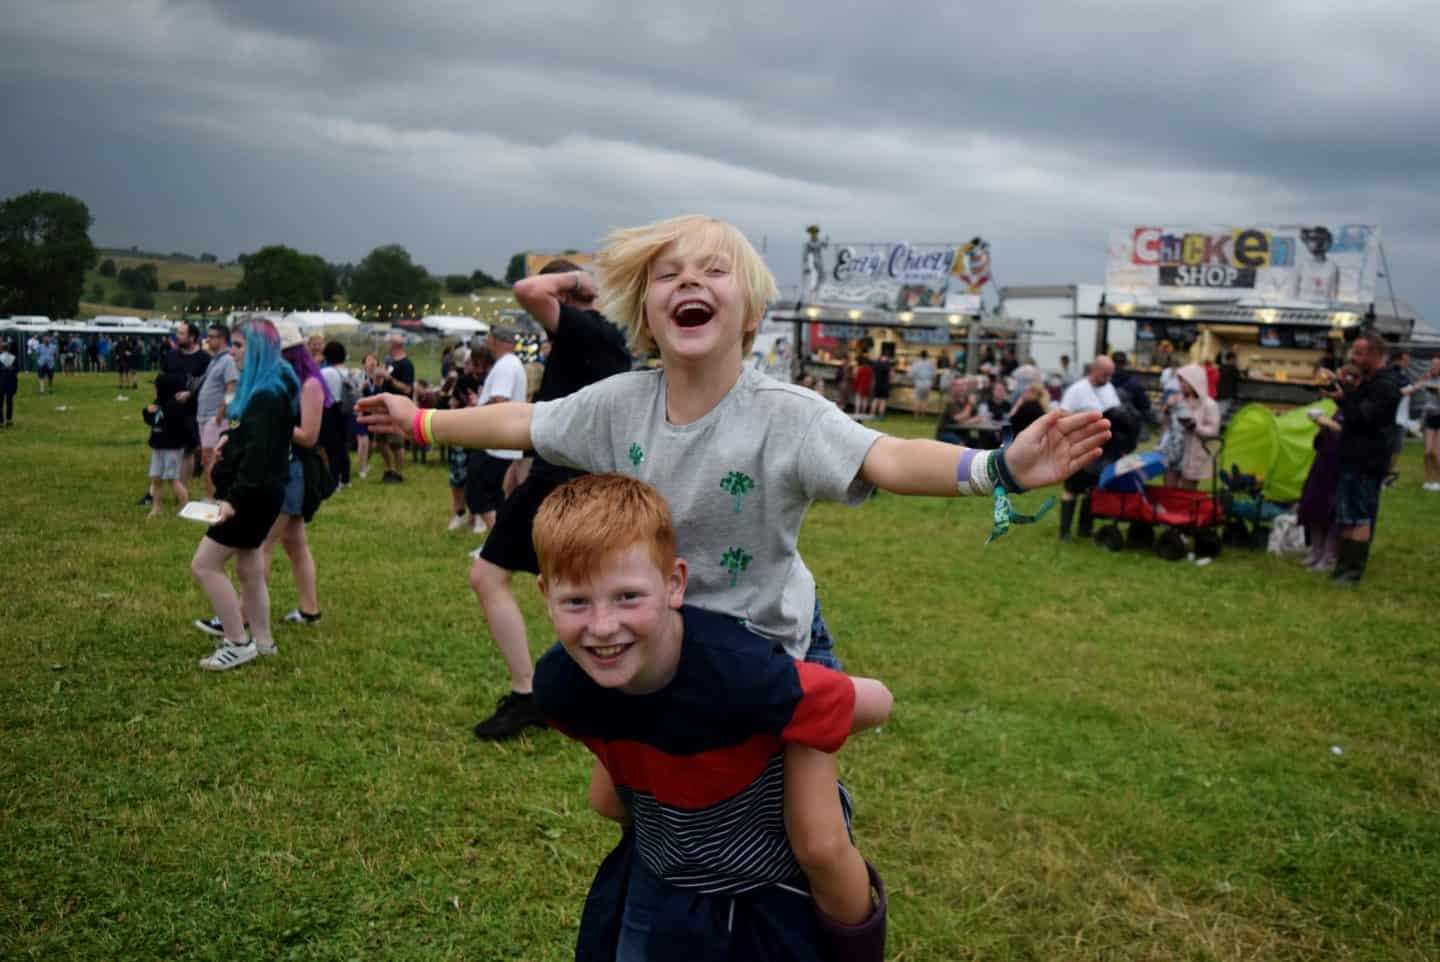 Little girl on her brother's back at YNotFestival